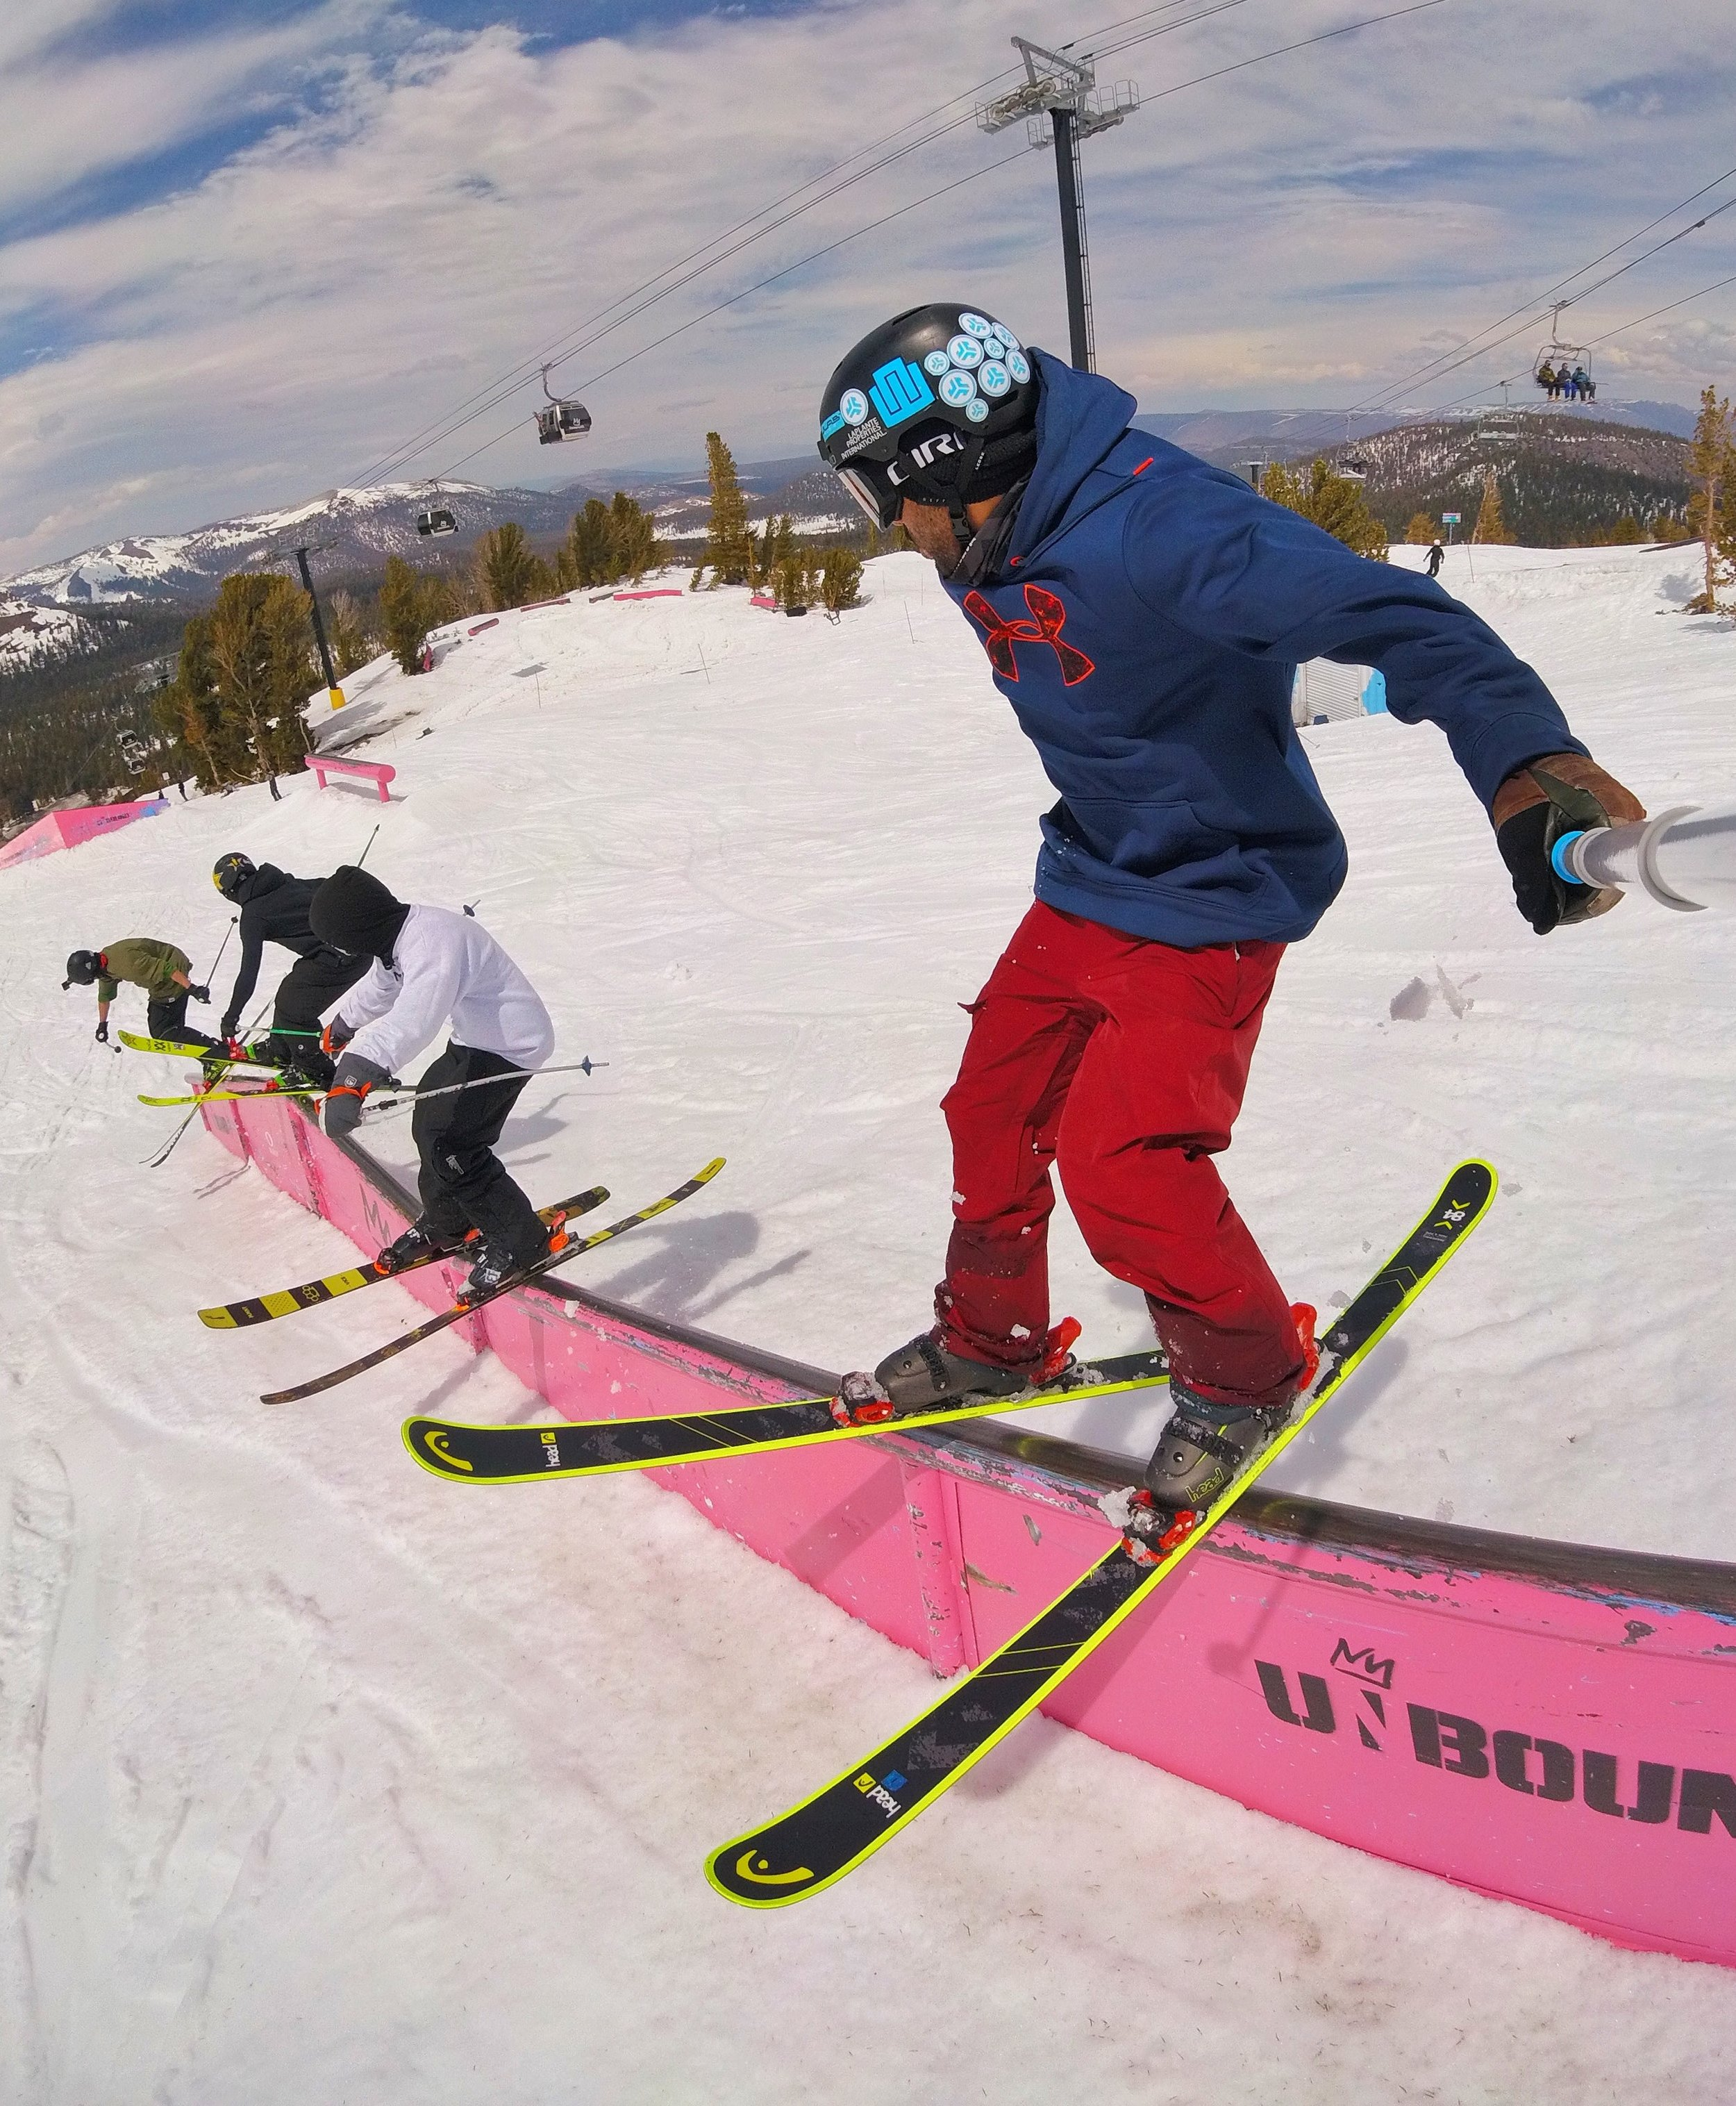 Rail train with John Brown, Willie Borm, and Cody LaPlante